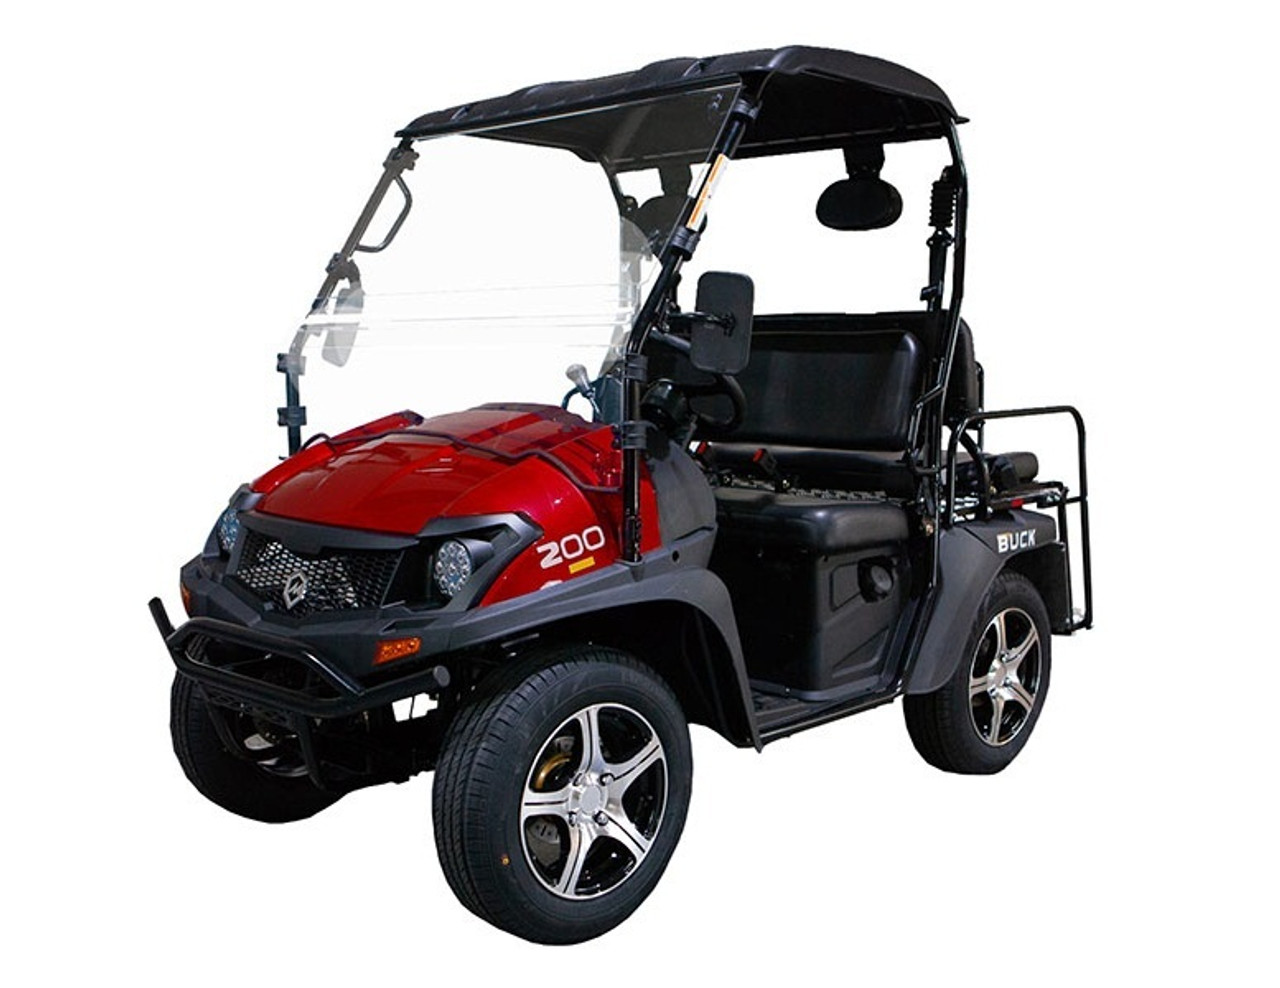 RED - MASSIMO BUCK 200X UTV, 177cc Four-Stroke, Single Cylinder - Fully Assembled and Tested